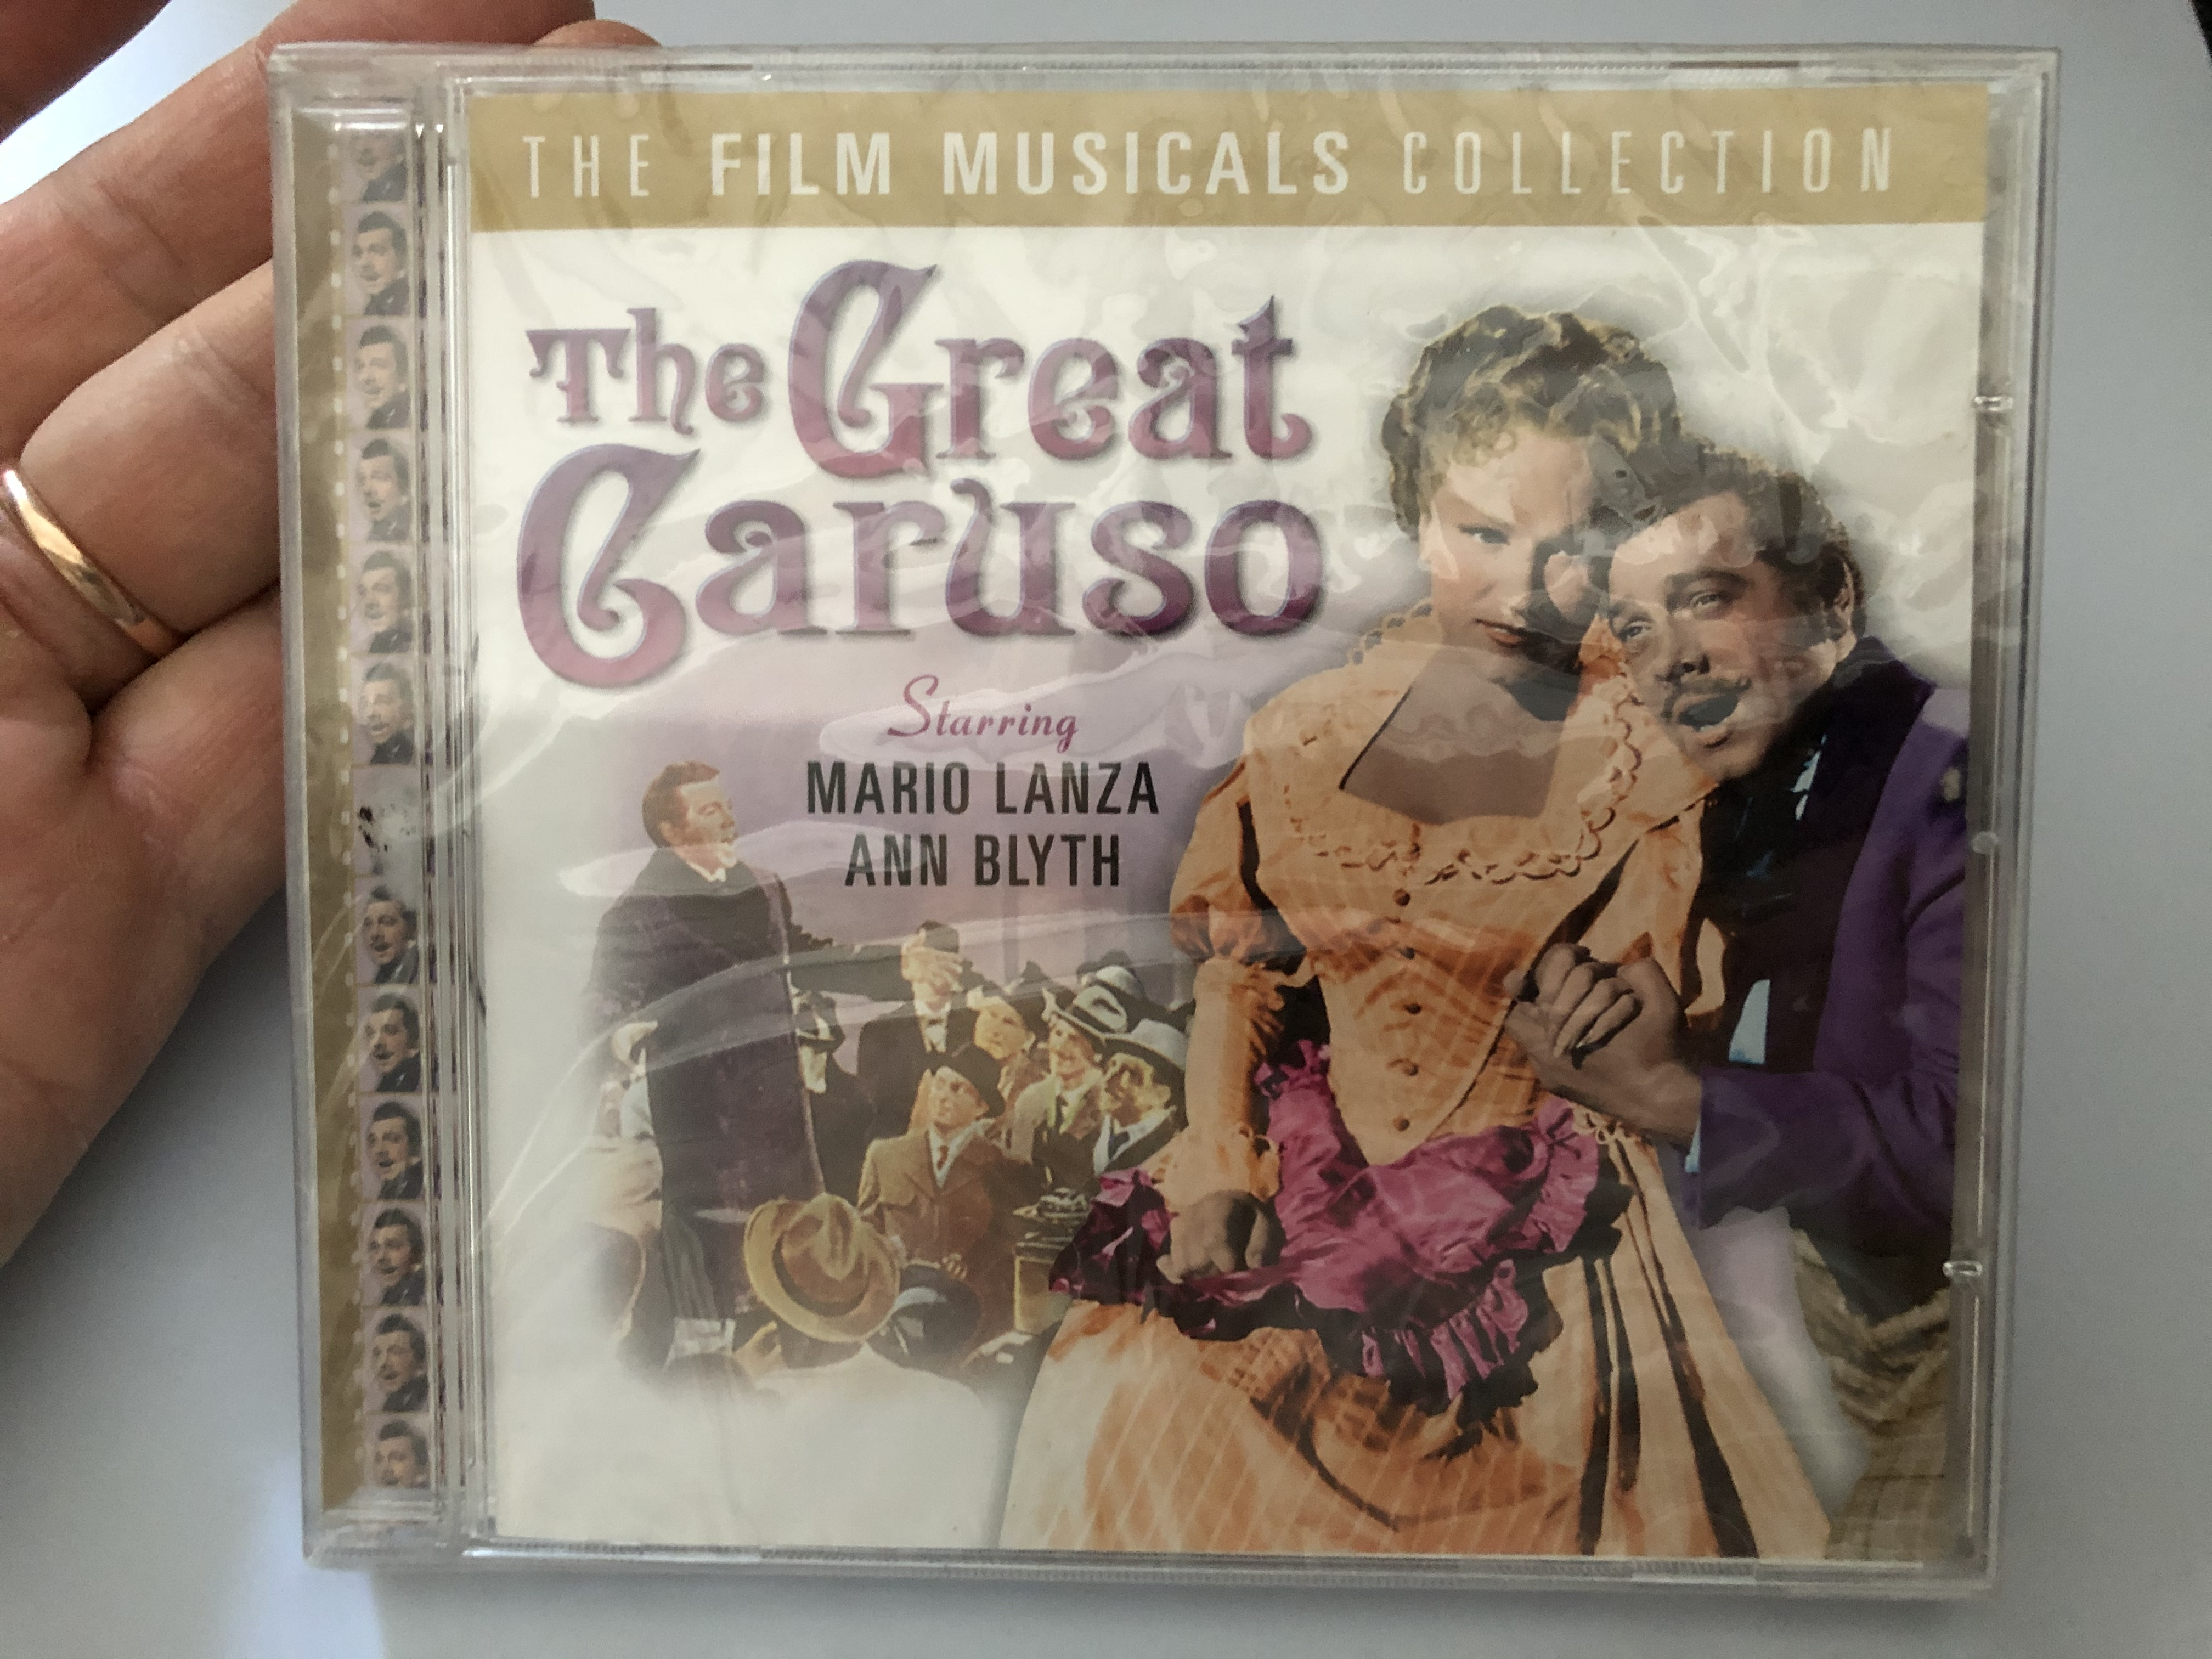 the-great-caruso-starring-mario-lanza-ann-blyth-the-film-musicals-collection-prism-leisure-audio-cd-2004-platcd-1263-1-.jpg